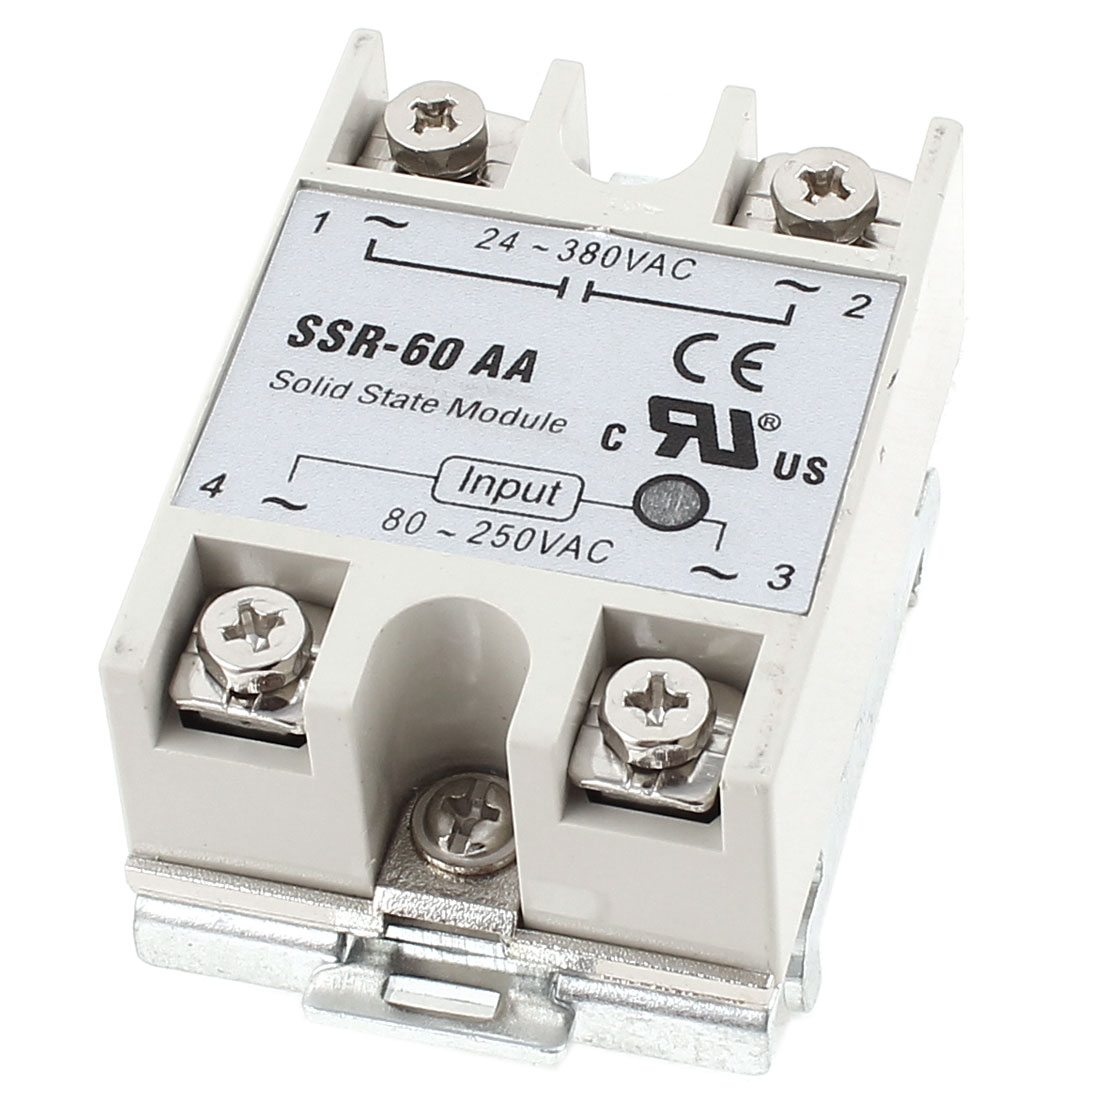 AC 24-380V 60A Output Spring Load 35mm DIN Rail Mount Single Phase SSR Solid State Relay w Bracket Socket